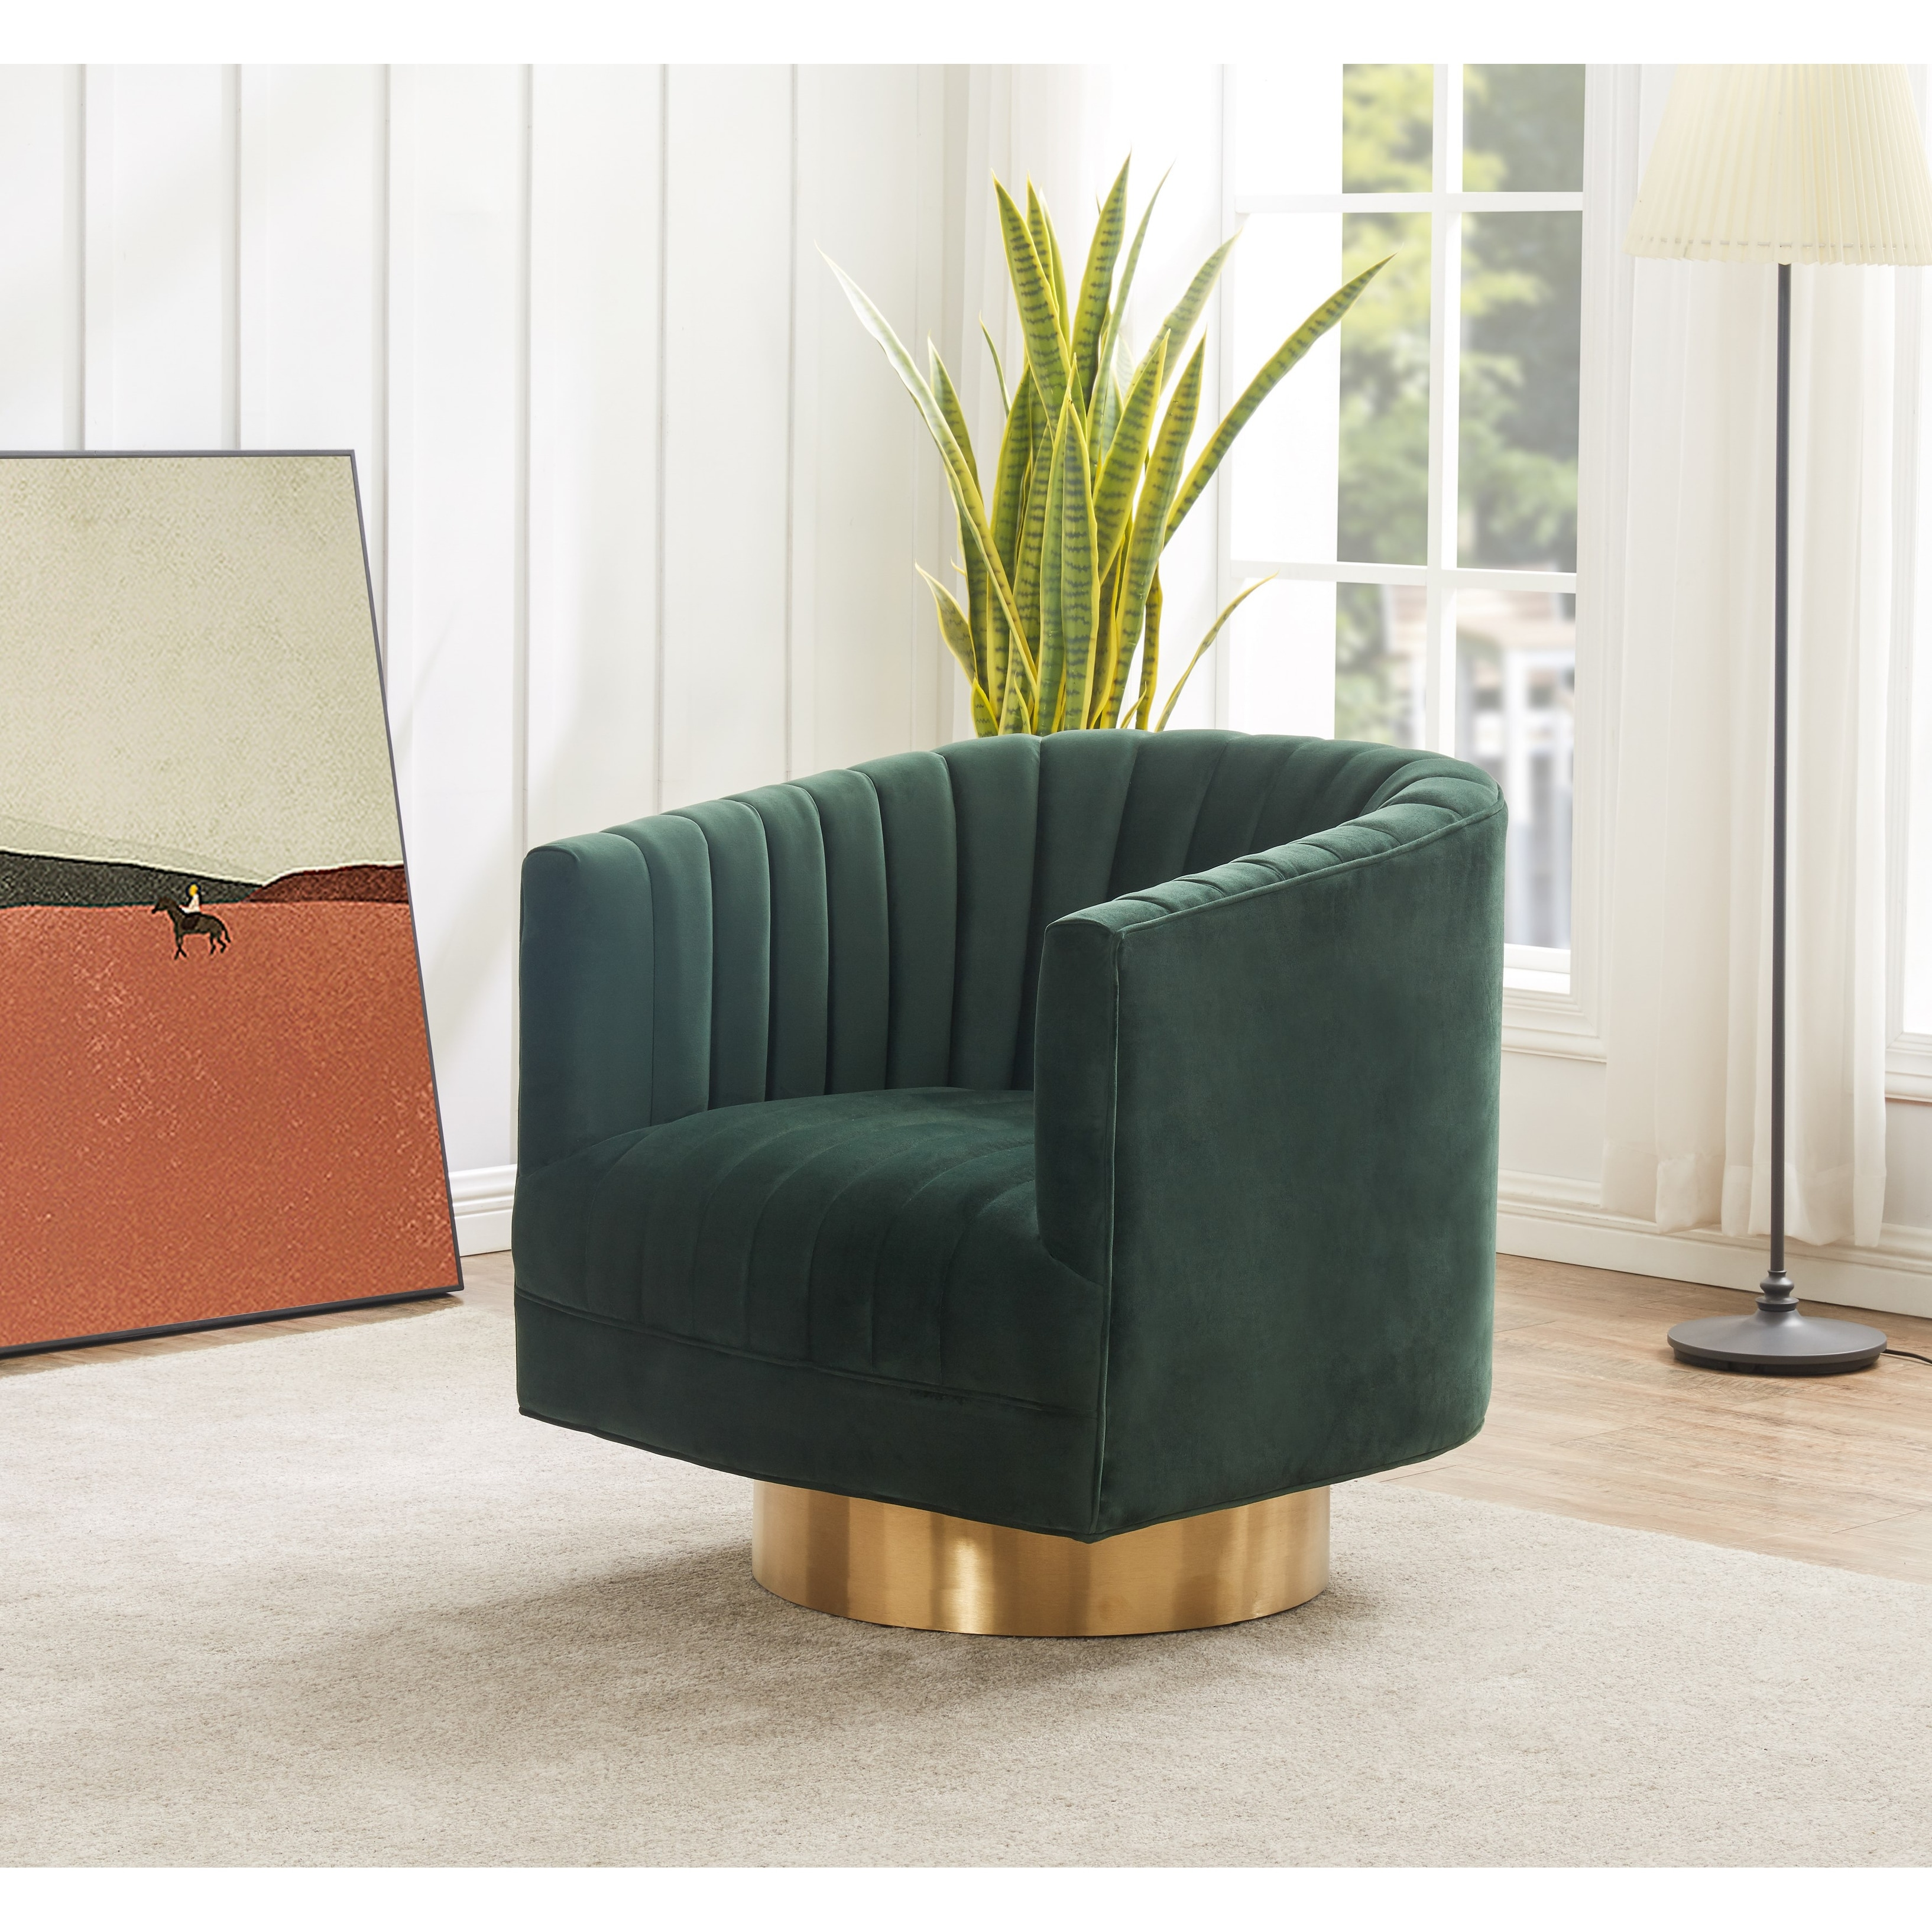 Safavieh Couture Josephine Swivel Barrel Velvet Chair 28 W X 31 L X 30 H On Sale Overstock 31227132 Forest Green Gold